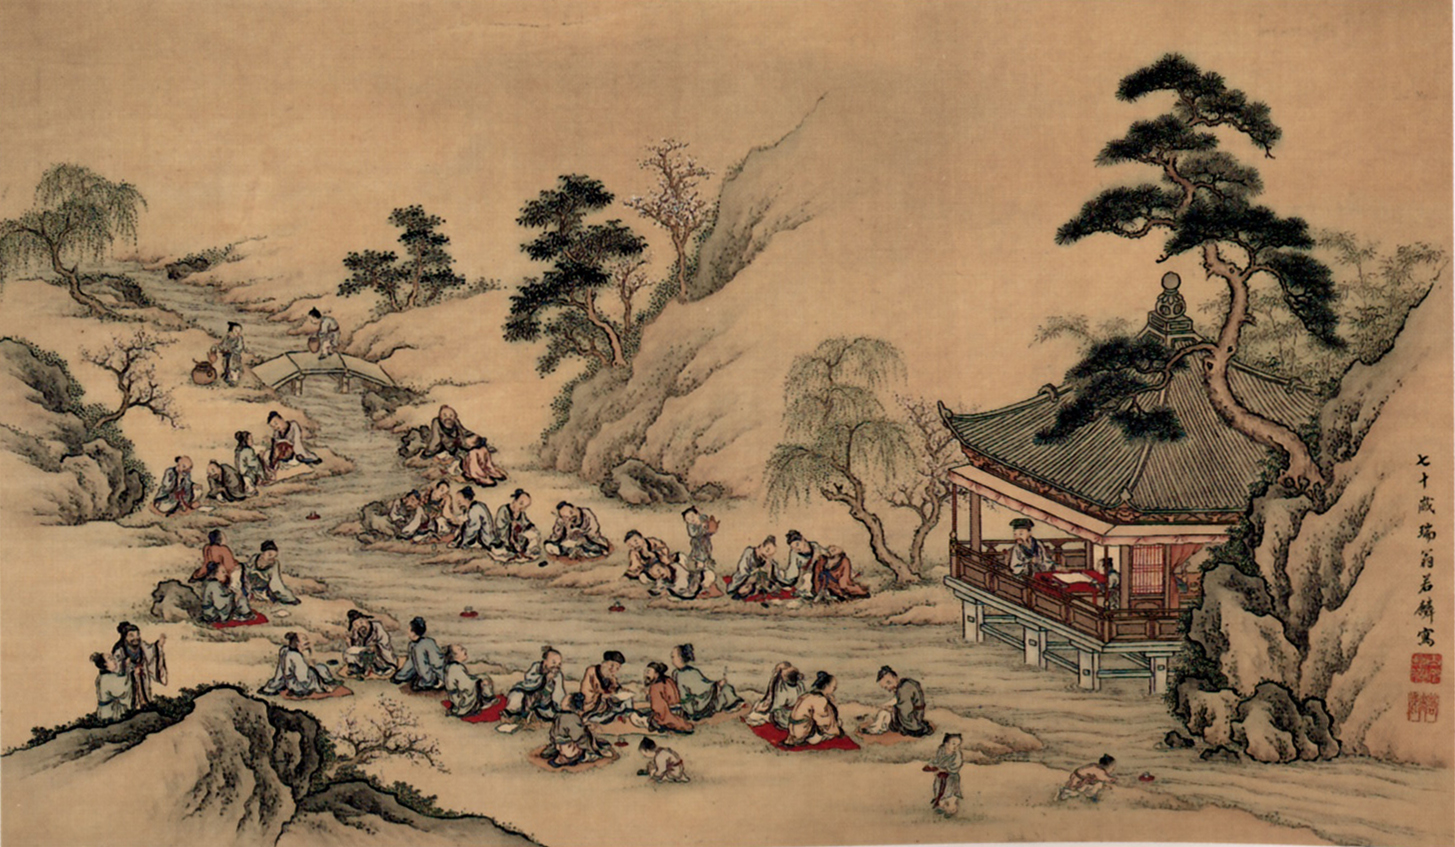 chinese history Research within librarian-selected research topics on chinese history from the questia online library, including full-text online books, academic journals, magazines, newspapers and more.